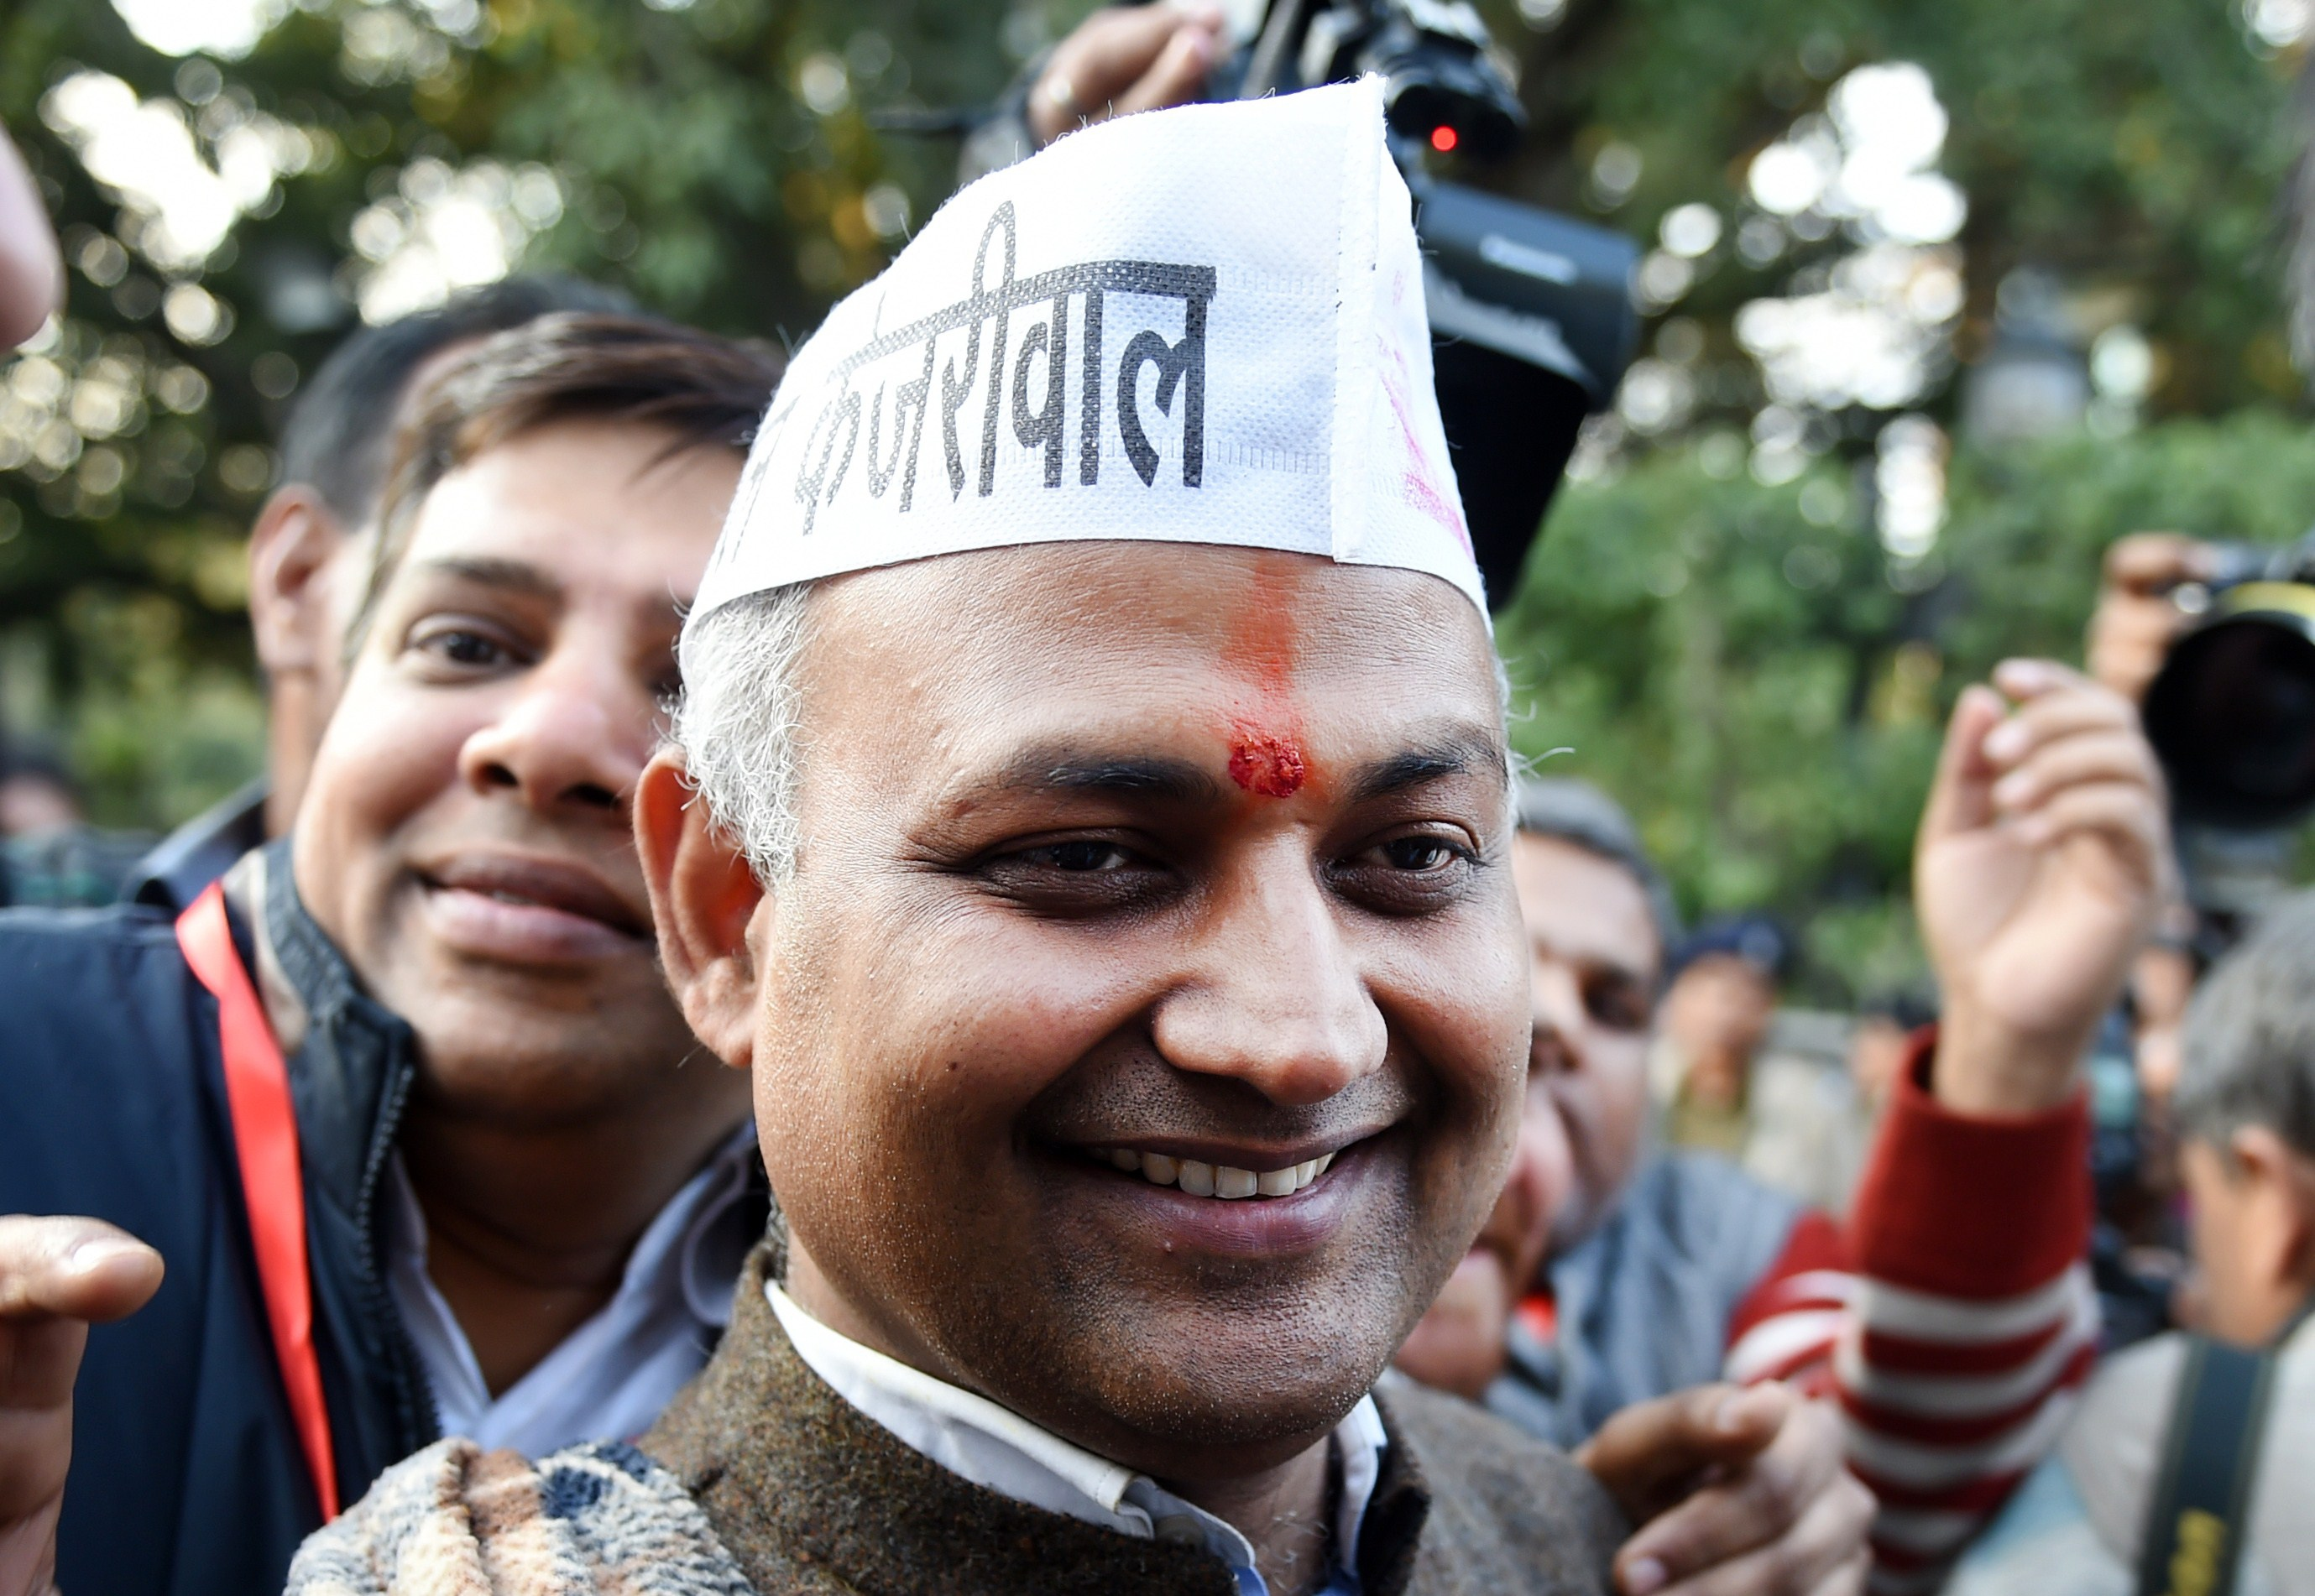 Senior Leader of India's Aam Aadmi Party (AAP) Somnath Bharti (C) arrives for a meeting in New Delhi on February 10, 2015.